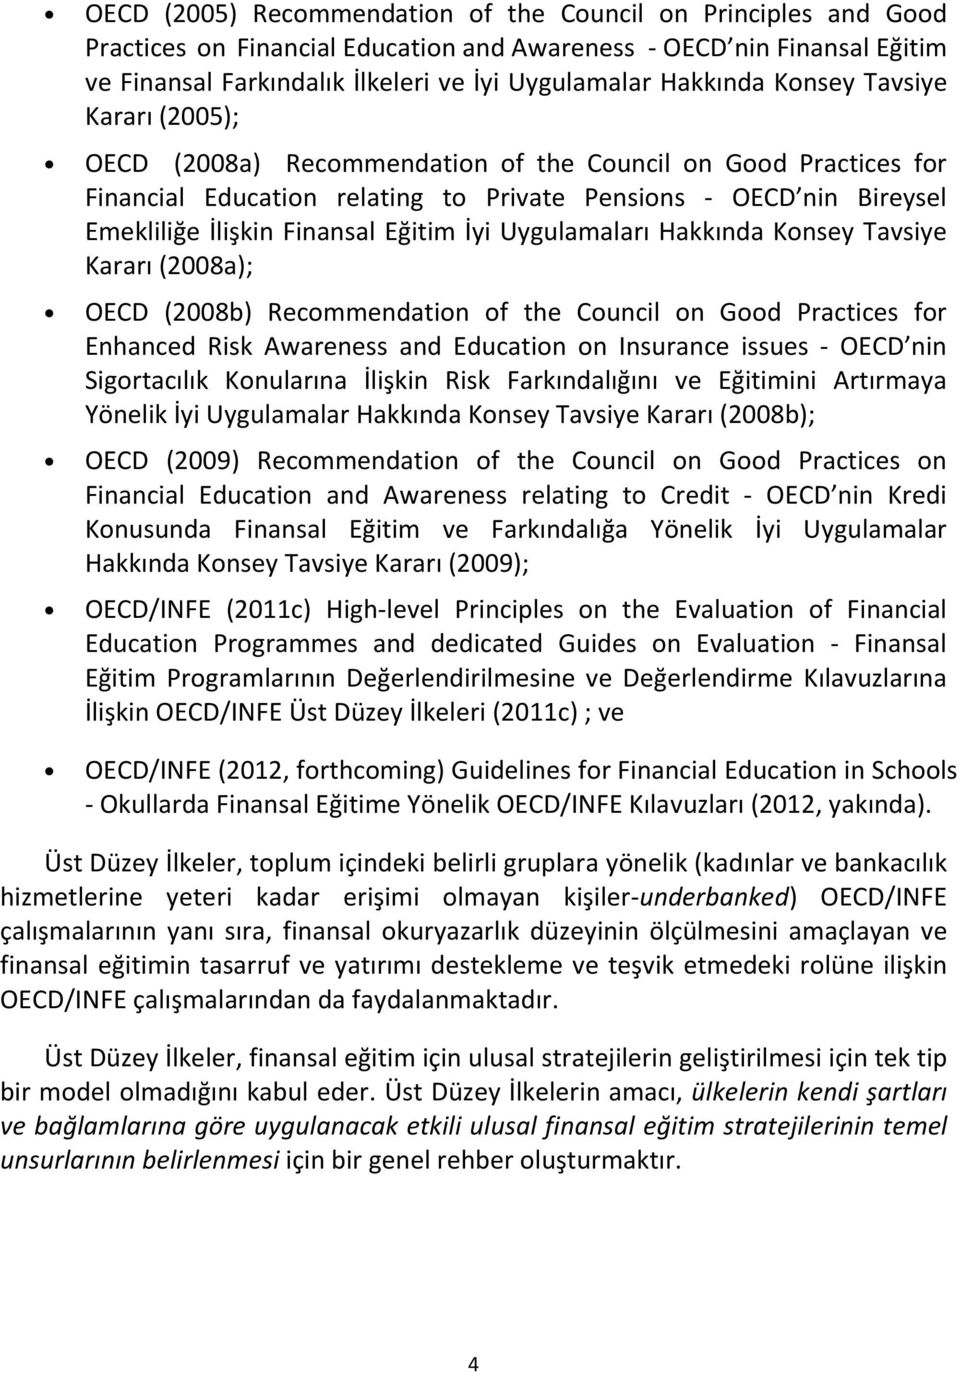 İyi Uygulamaları Hakkında Konsey Tavsiye Kararı (2008a); OECD (2008b) Recommendation of the Council on Good Practices for Enhanced Risk Awareness and Education on Insurance issues - OECD nin